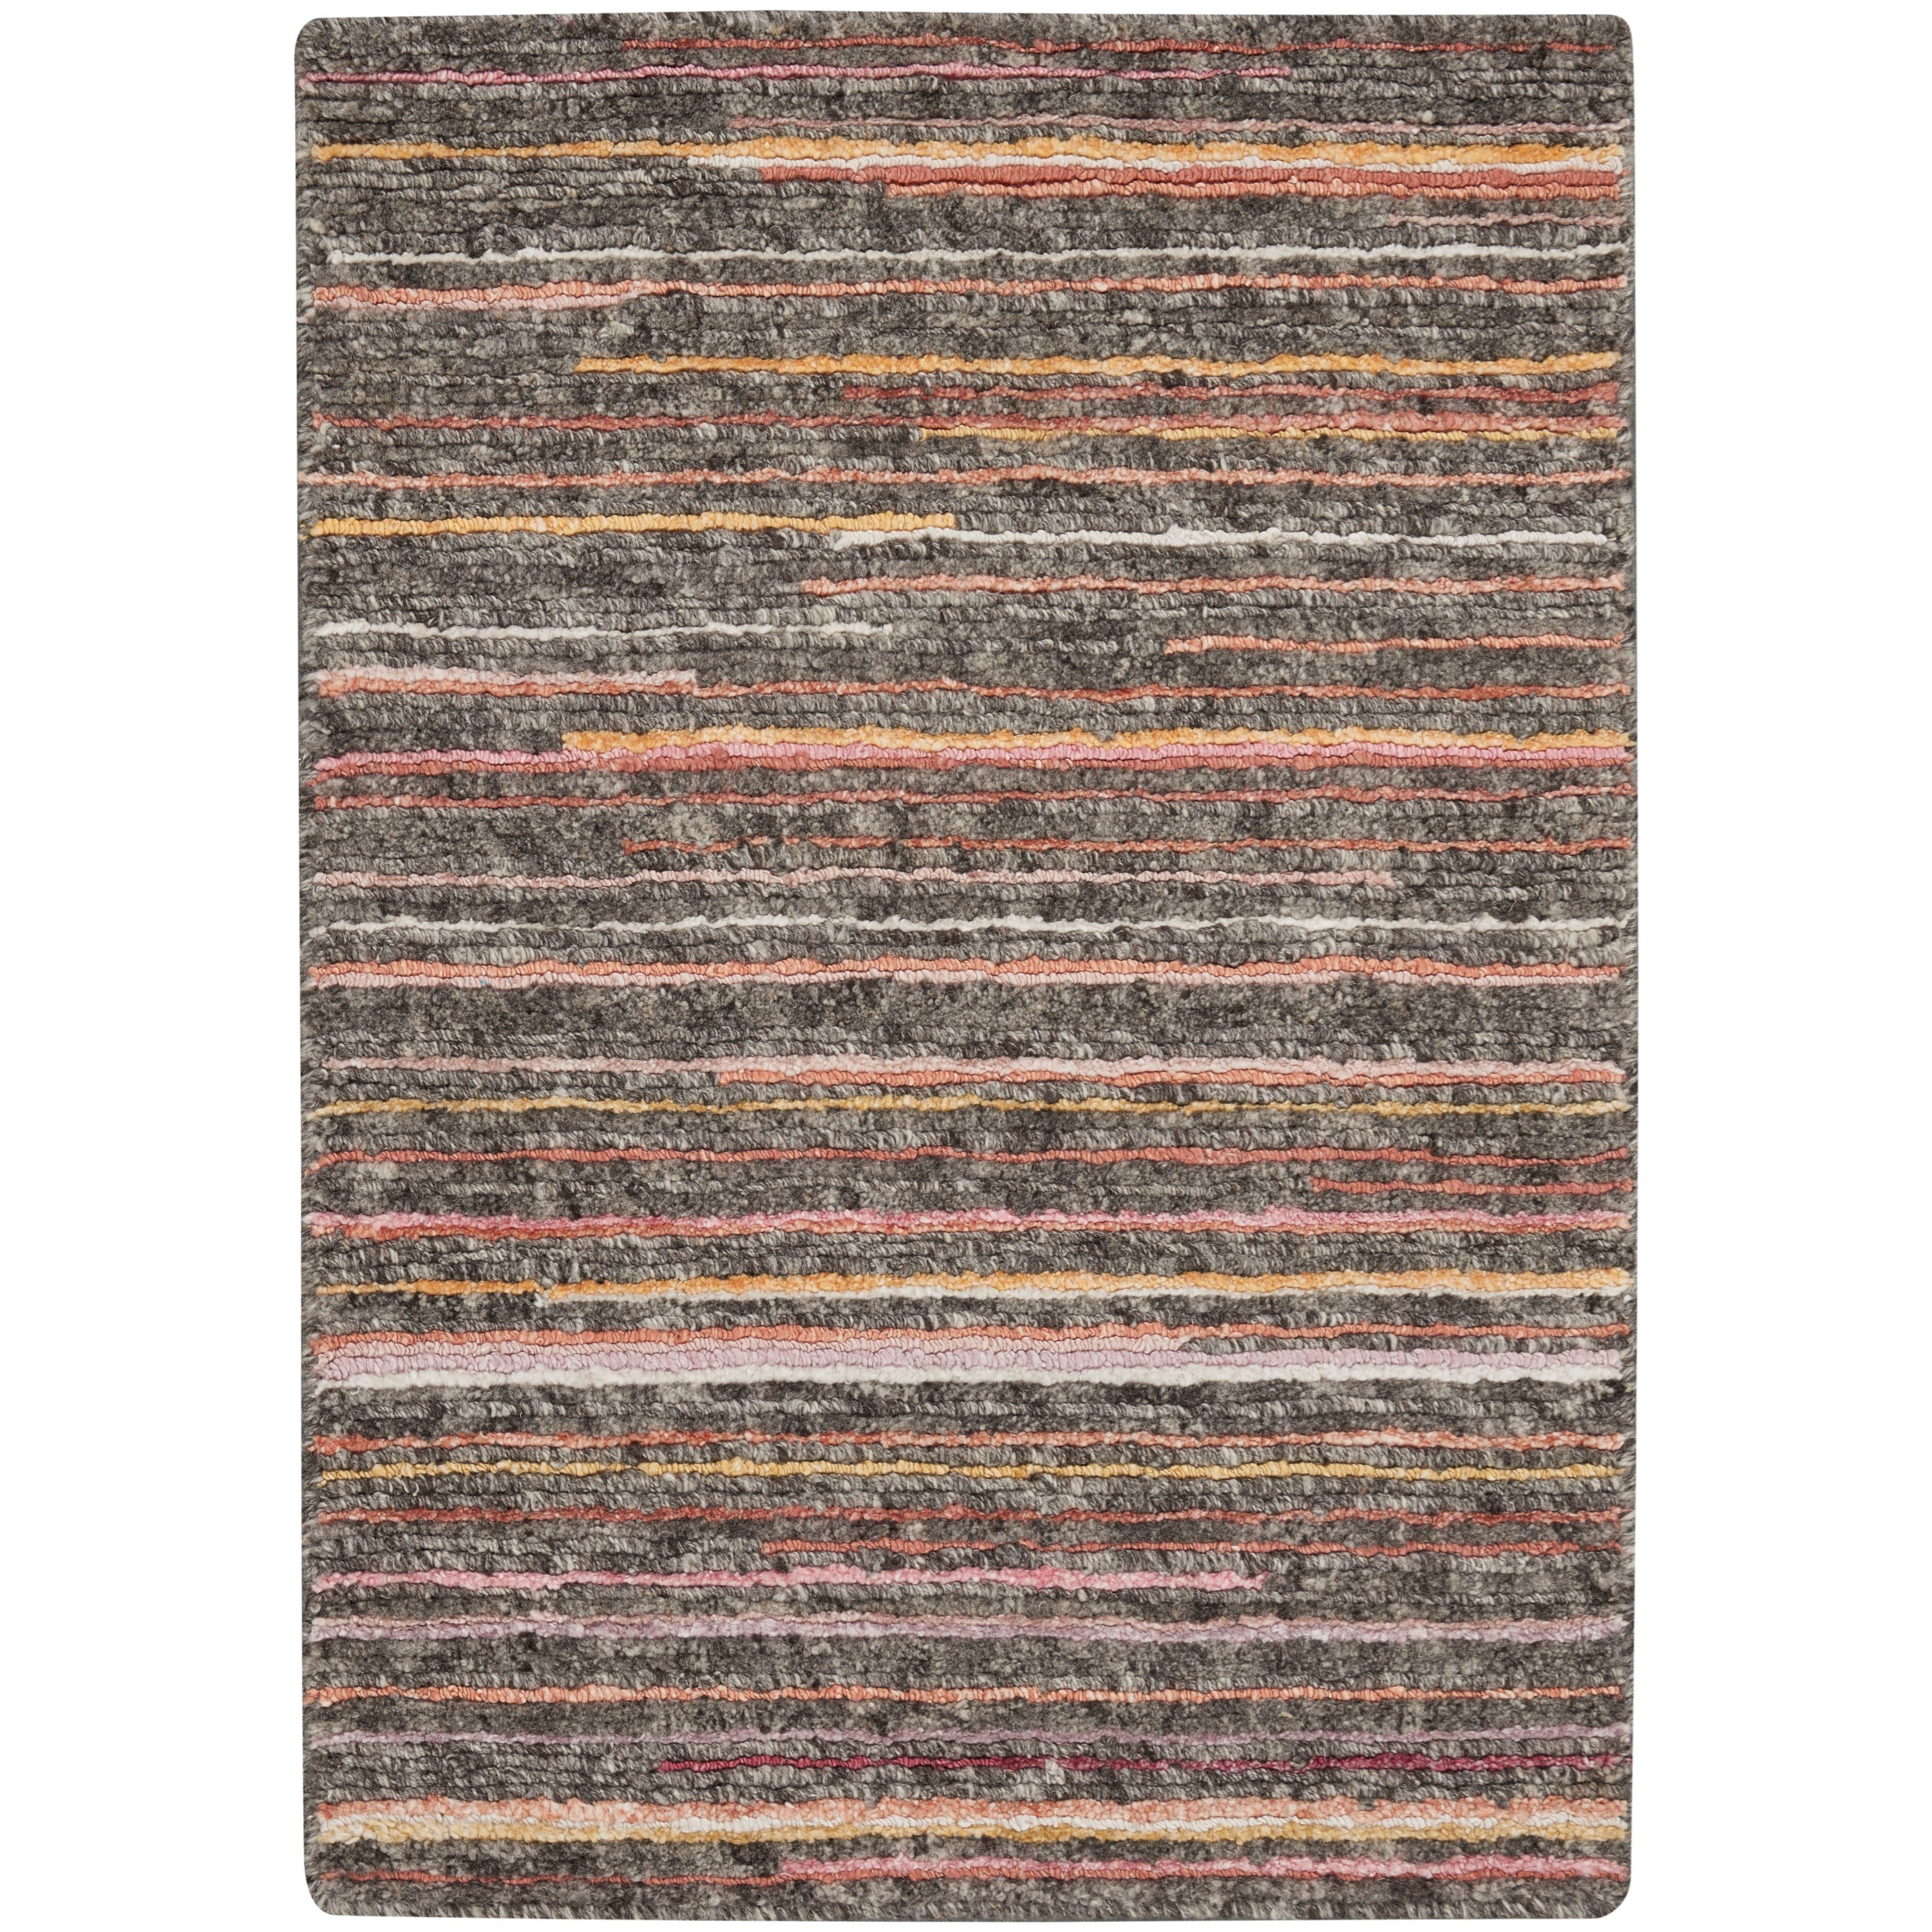 Plateau 2020 2' x 3' Rug by Nourison at Home Collections Furniture